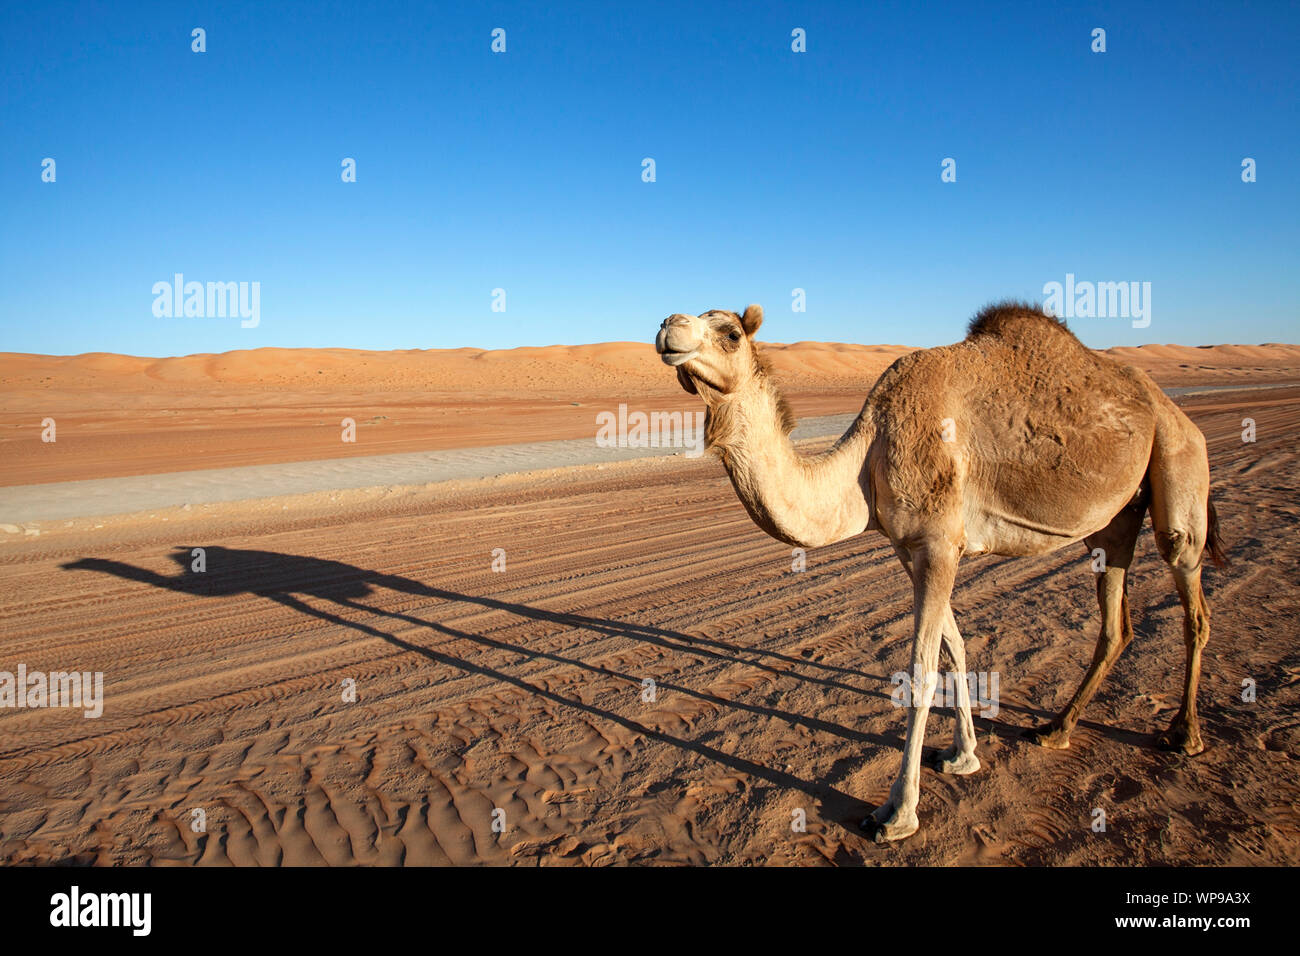 An Arabian camel / one-humped dromedary (Camelus dromedarius) and its shadow standing by the gravel road in Wahiba Sands in Oman Stock Photo